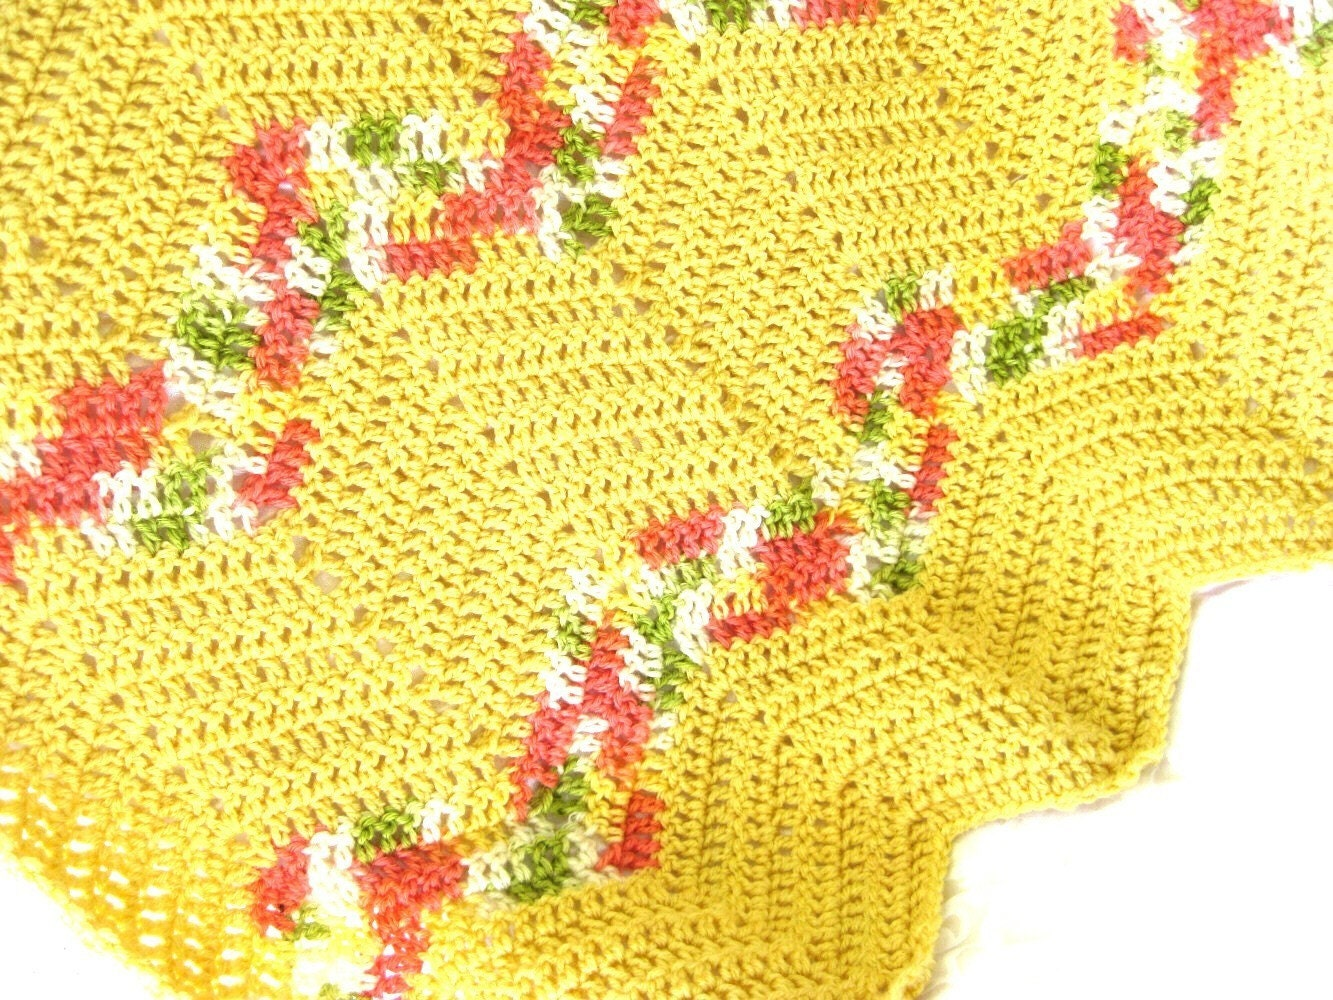 Beginners Crochet Ripple Patterns : Easy Ripple Crochet Afghan pattern suitable for by crochetgal